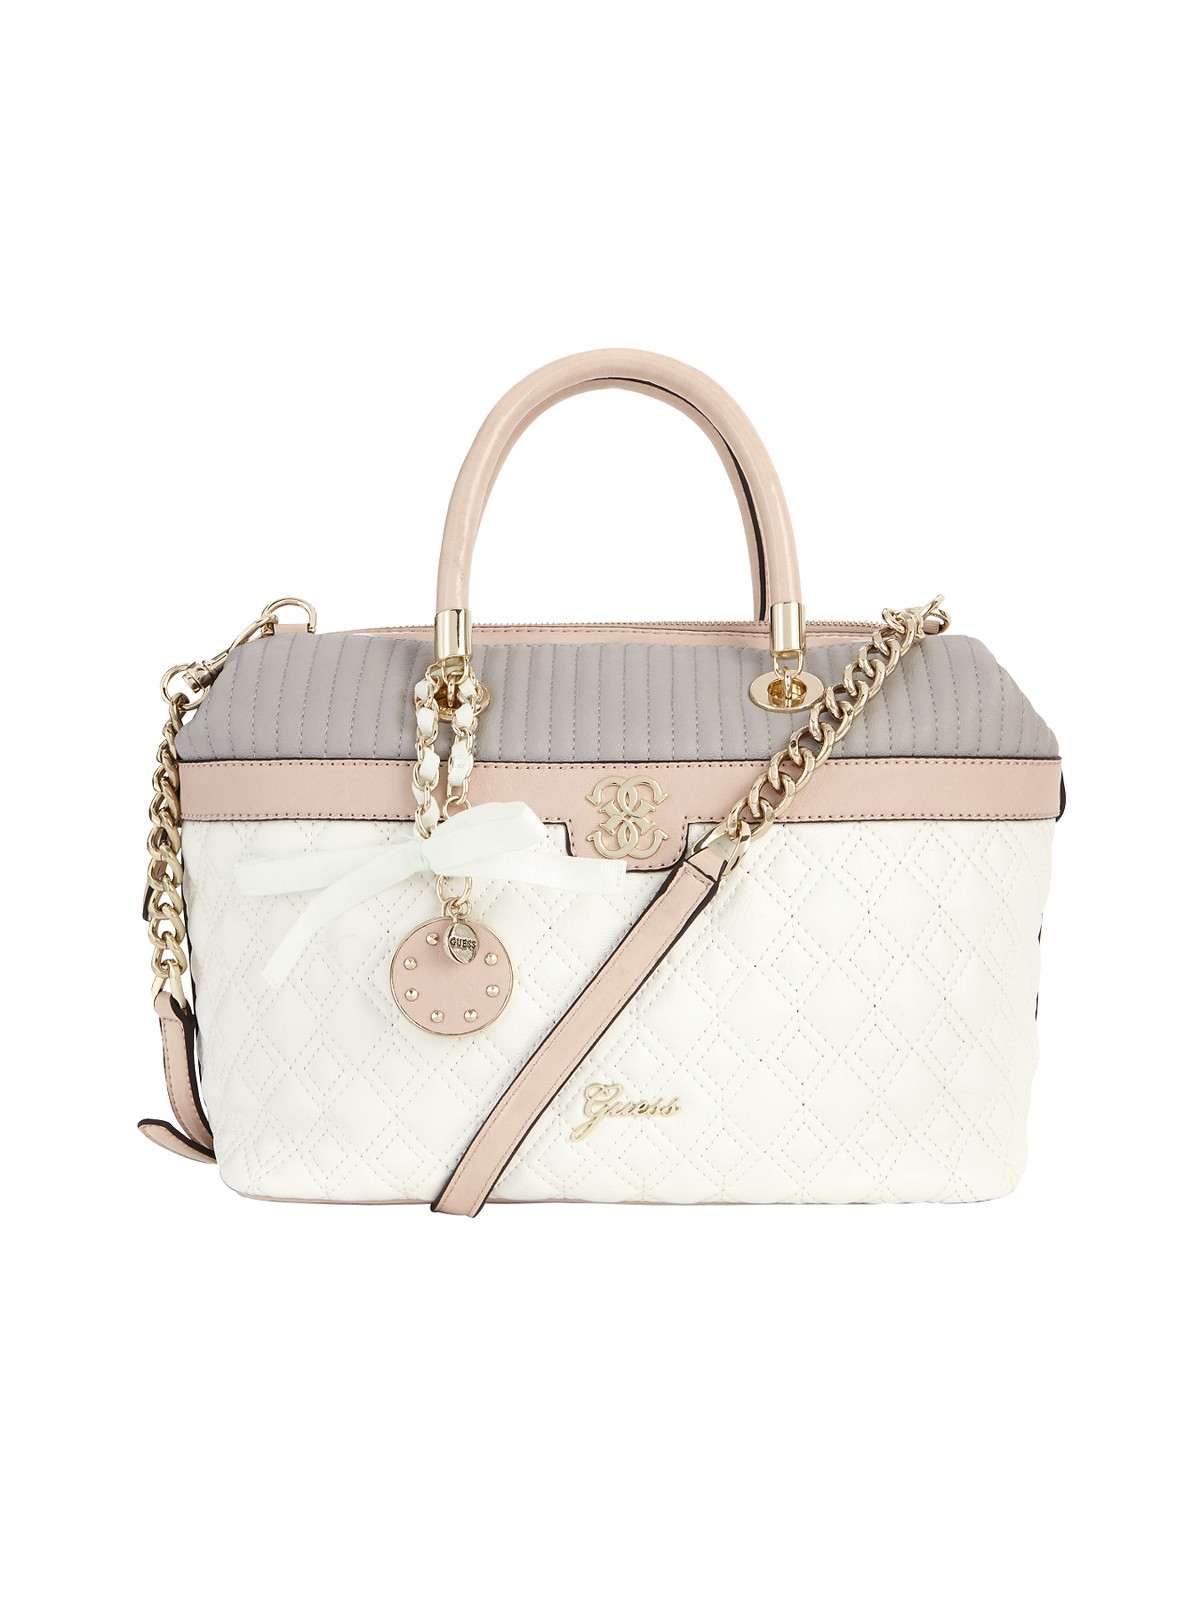 Guess Merci Box Tote Bag in Multicolor (white_multi) | Lyst